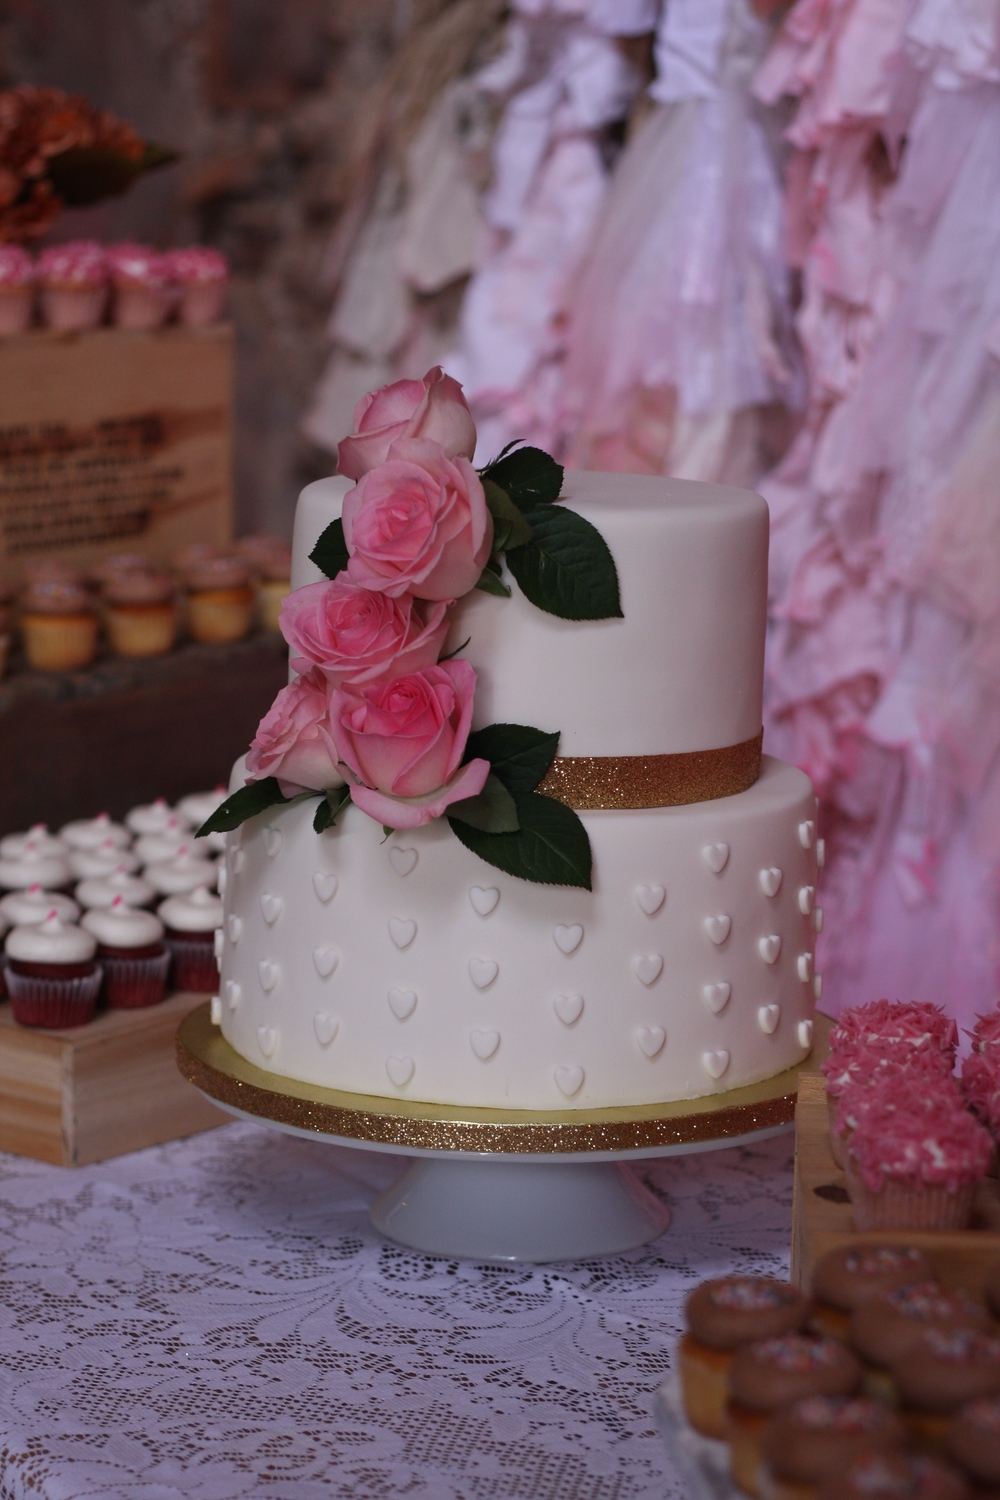 Wedding Cake with Fondant Details